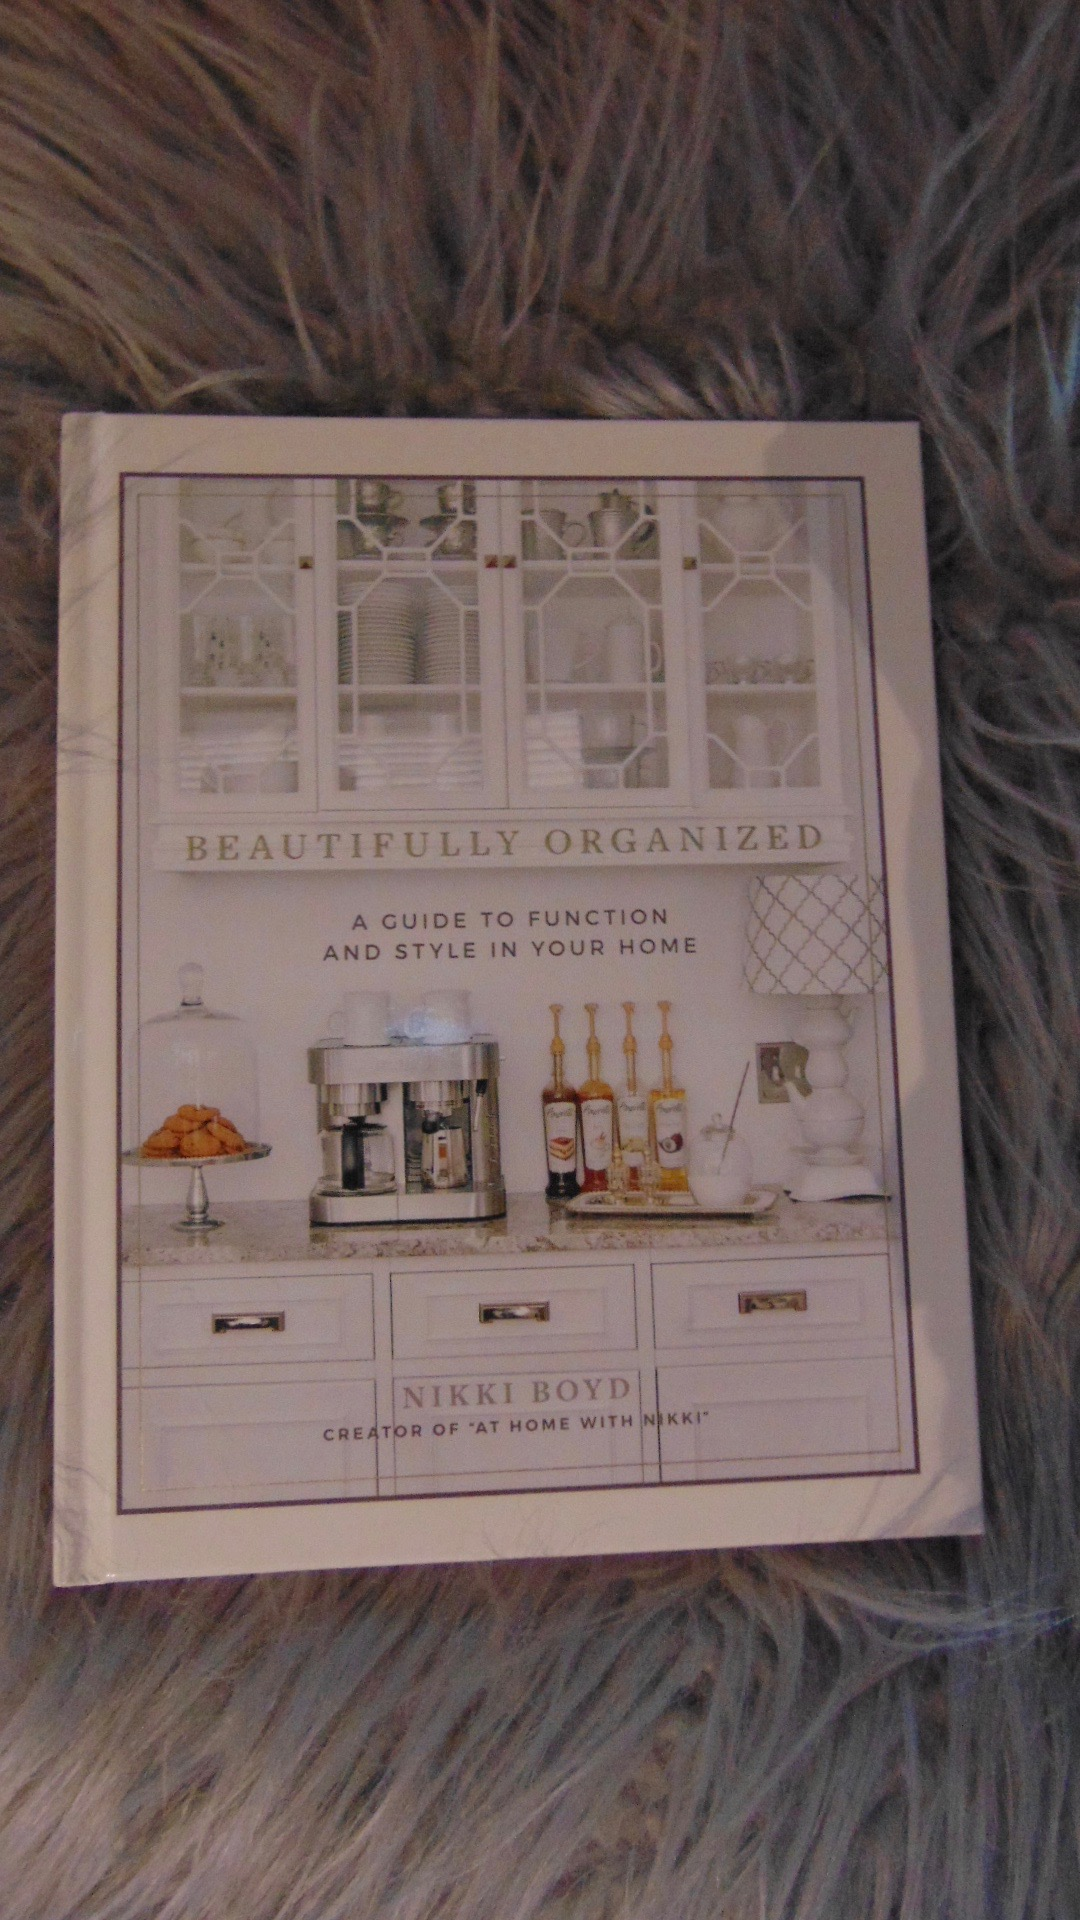 Best Cheap Coffee Table Books: Coffee Table Book Styling ...